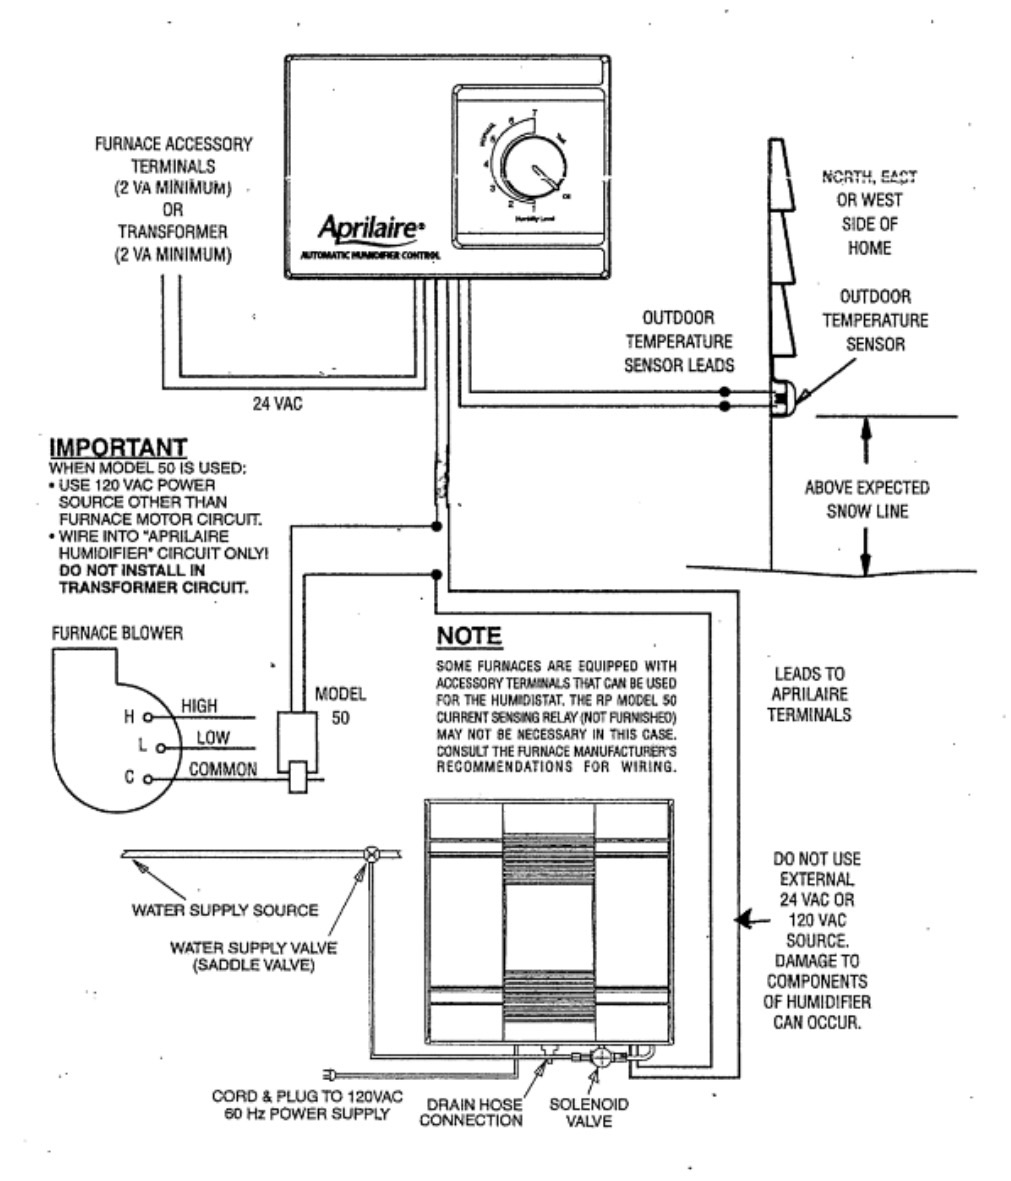 hight resolution of related with aprilaire current sensing relay wiring diagram